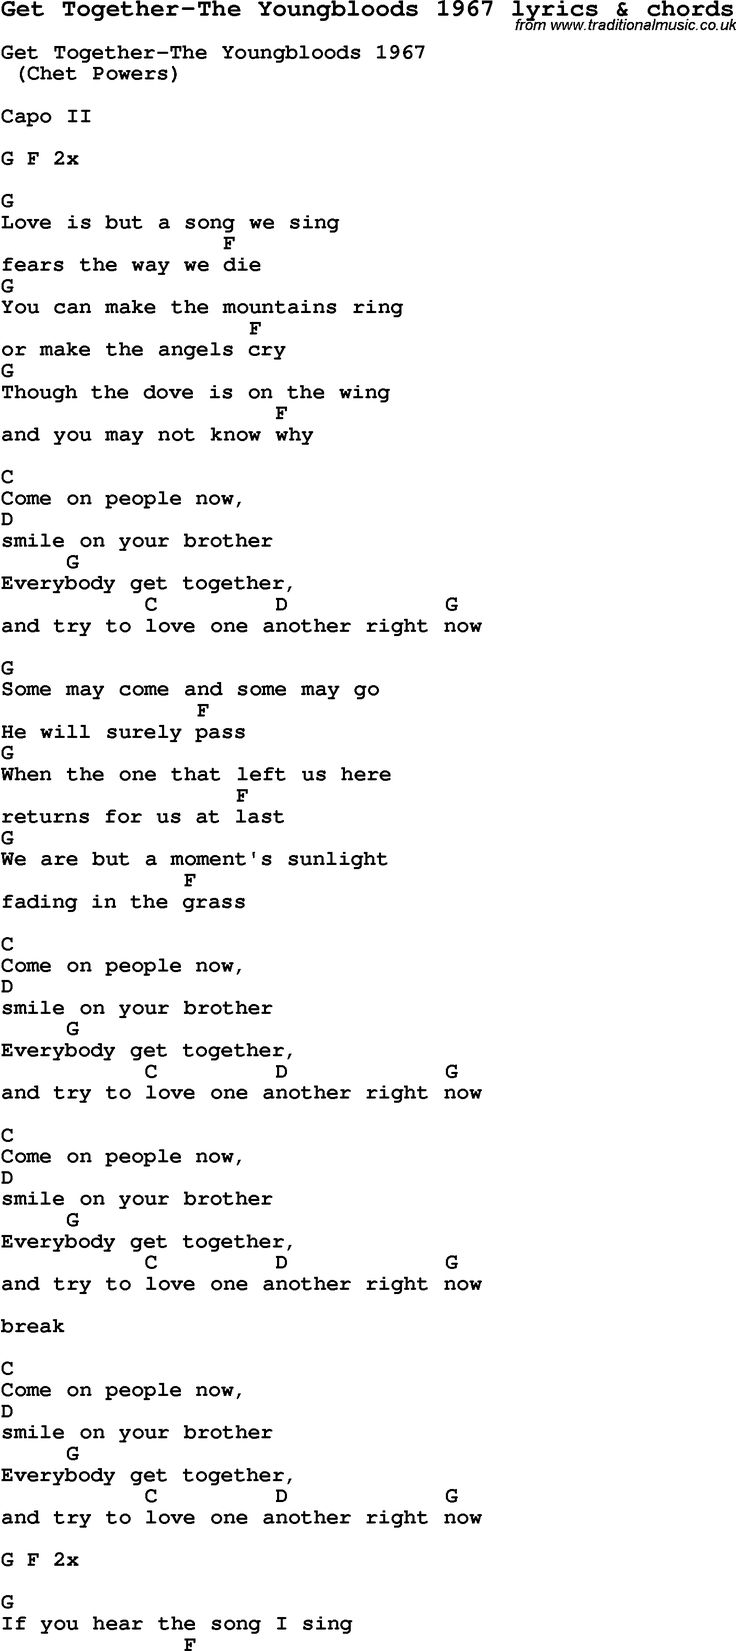 5417 best music music music images on pinterest guitar music love song lyrics for get together the youngbloods 1967 with chords for ukulele hexwebz Image collections